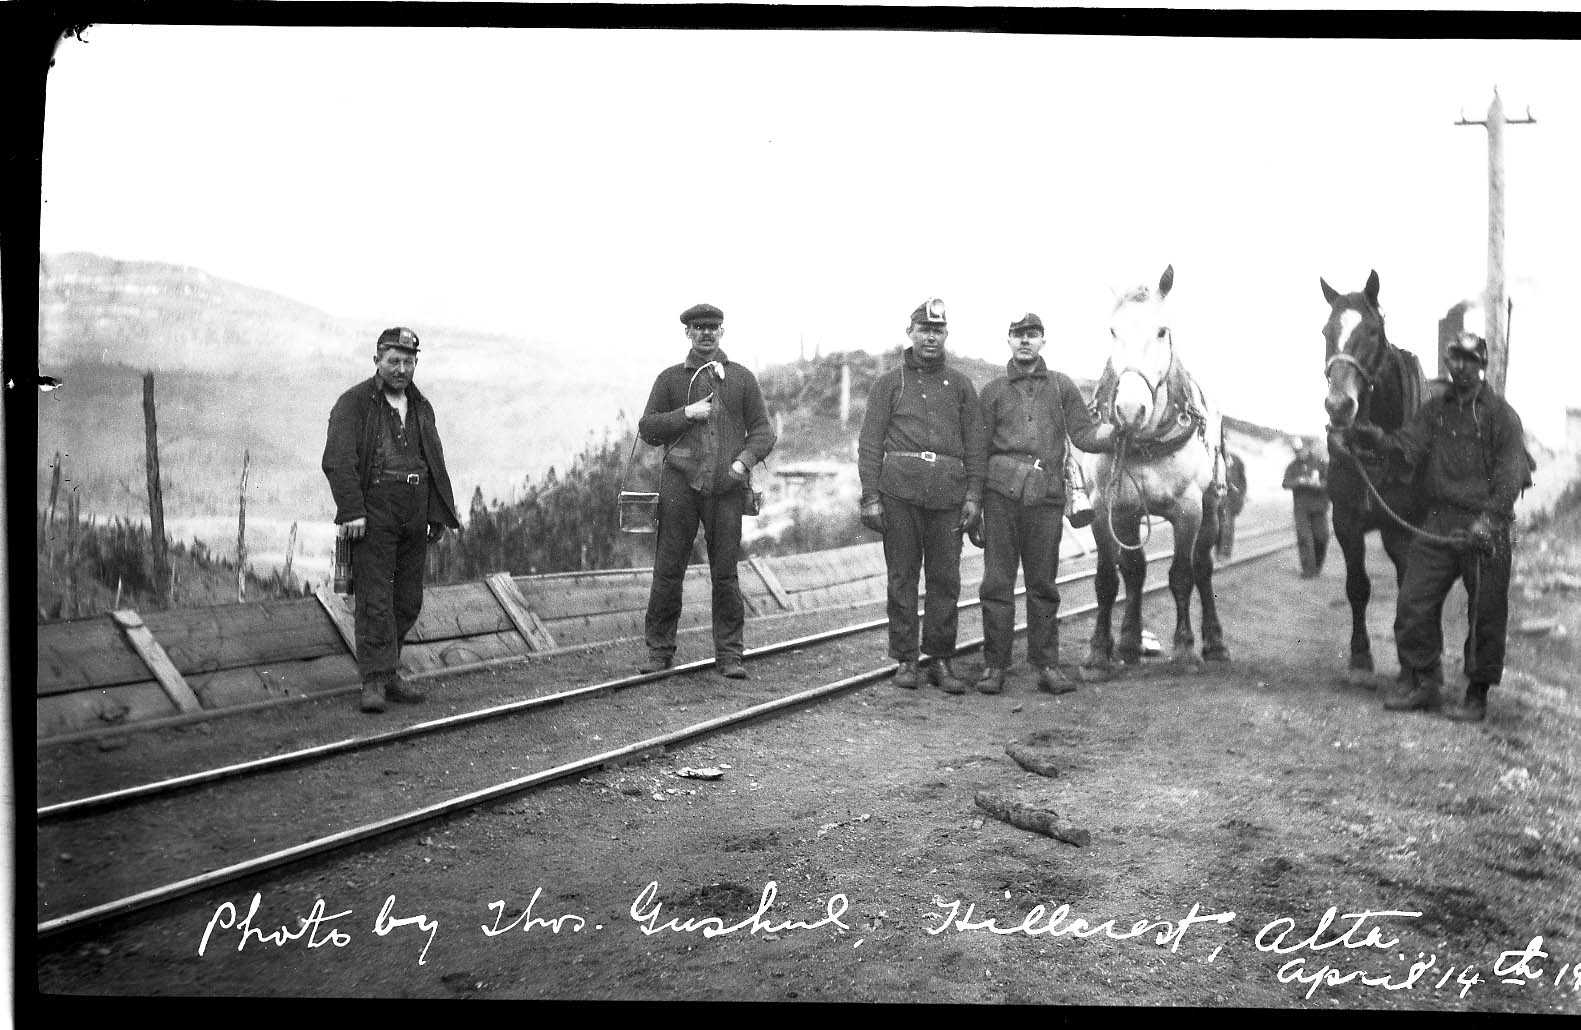 7345 Gushul neg. miners posing at Hillcrest Collieries April 14, 1919 excellent Belle